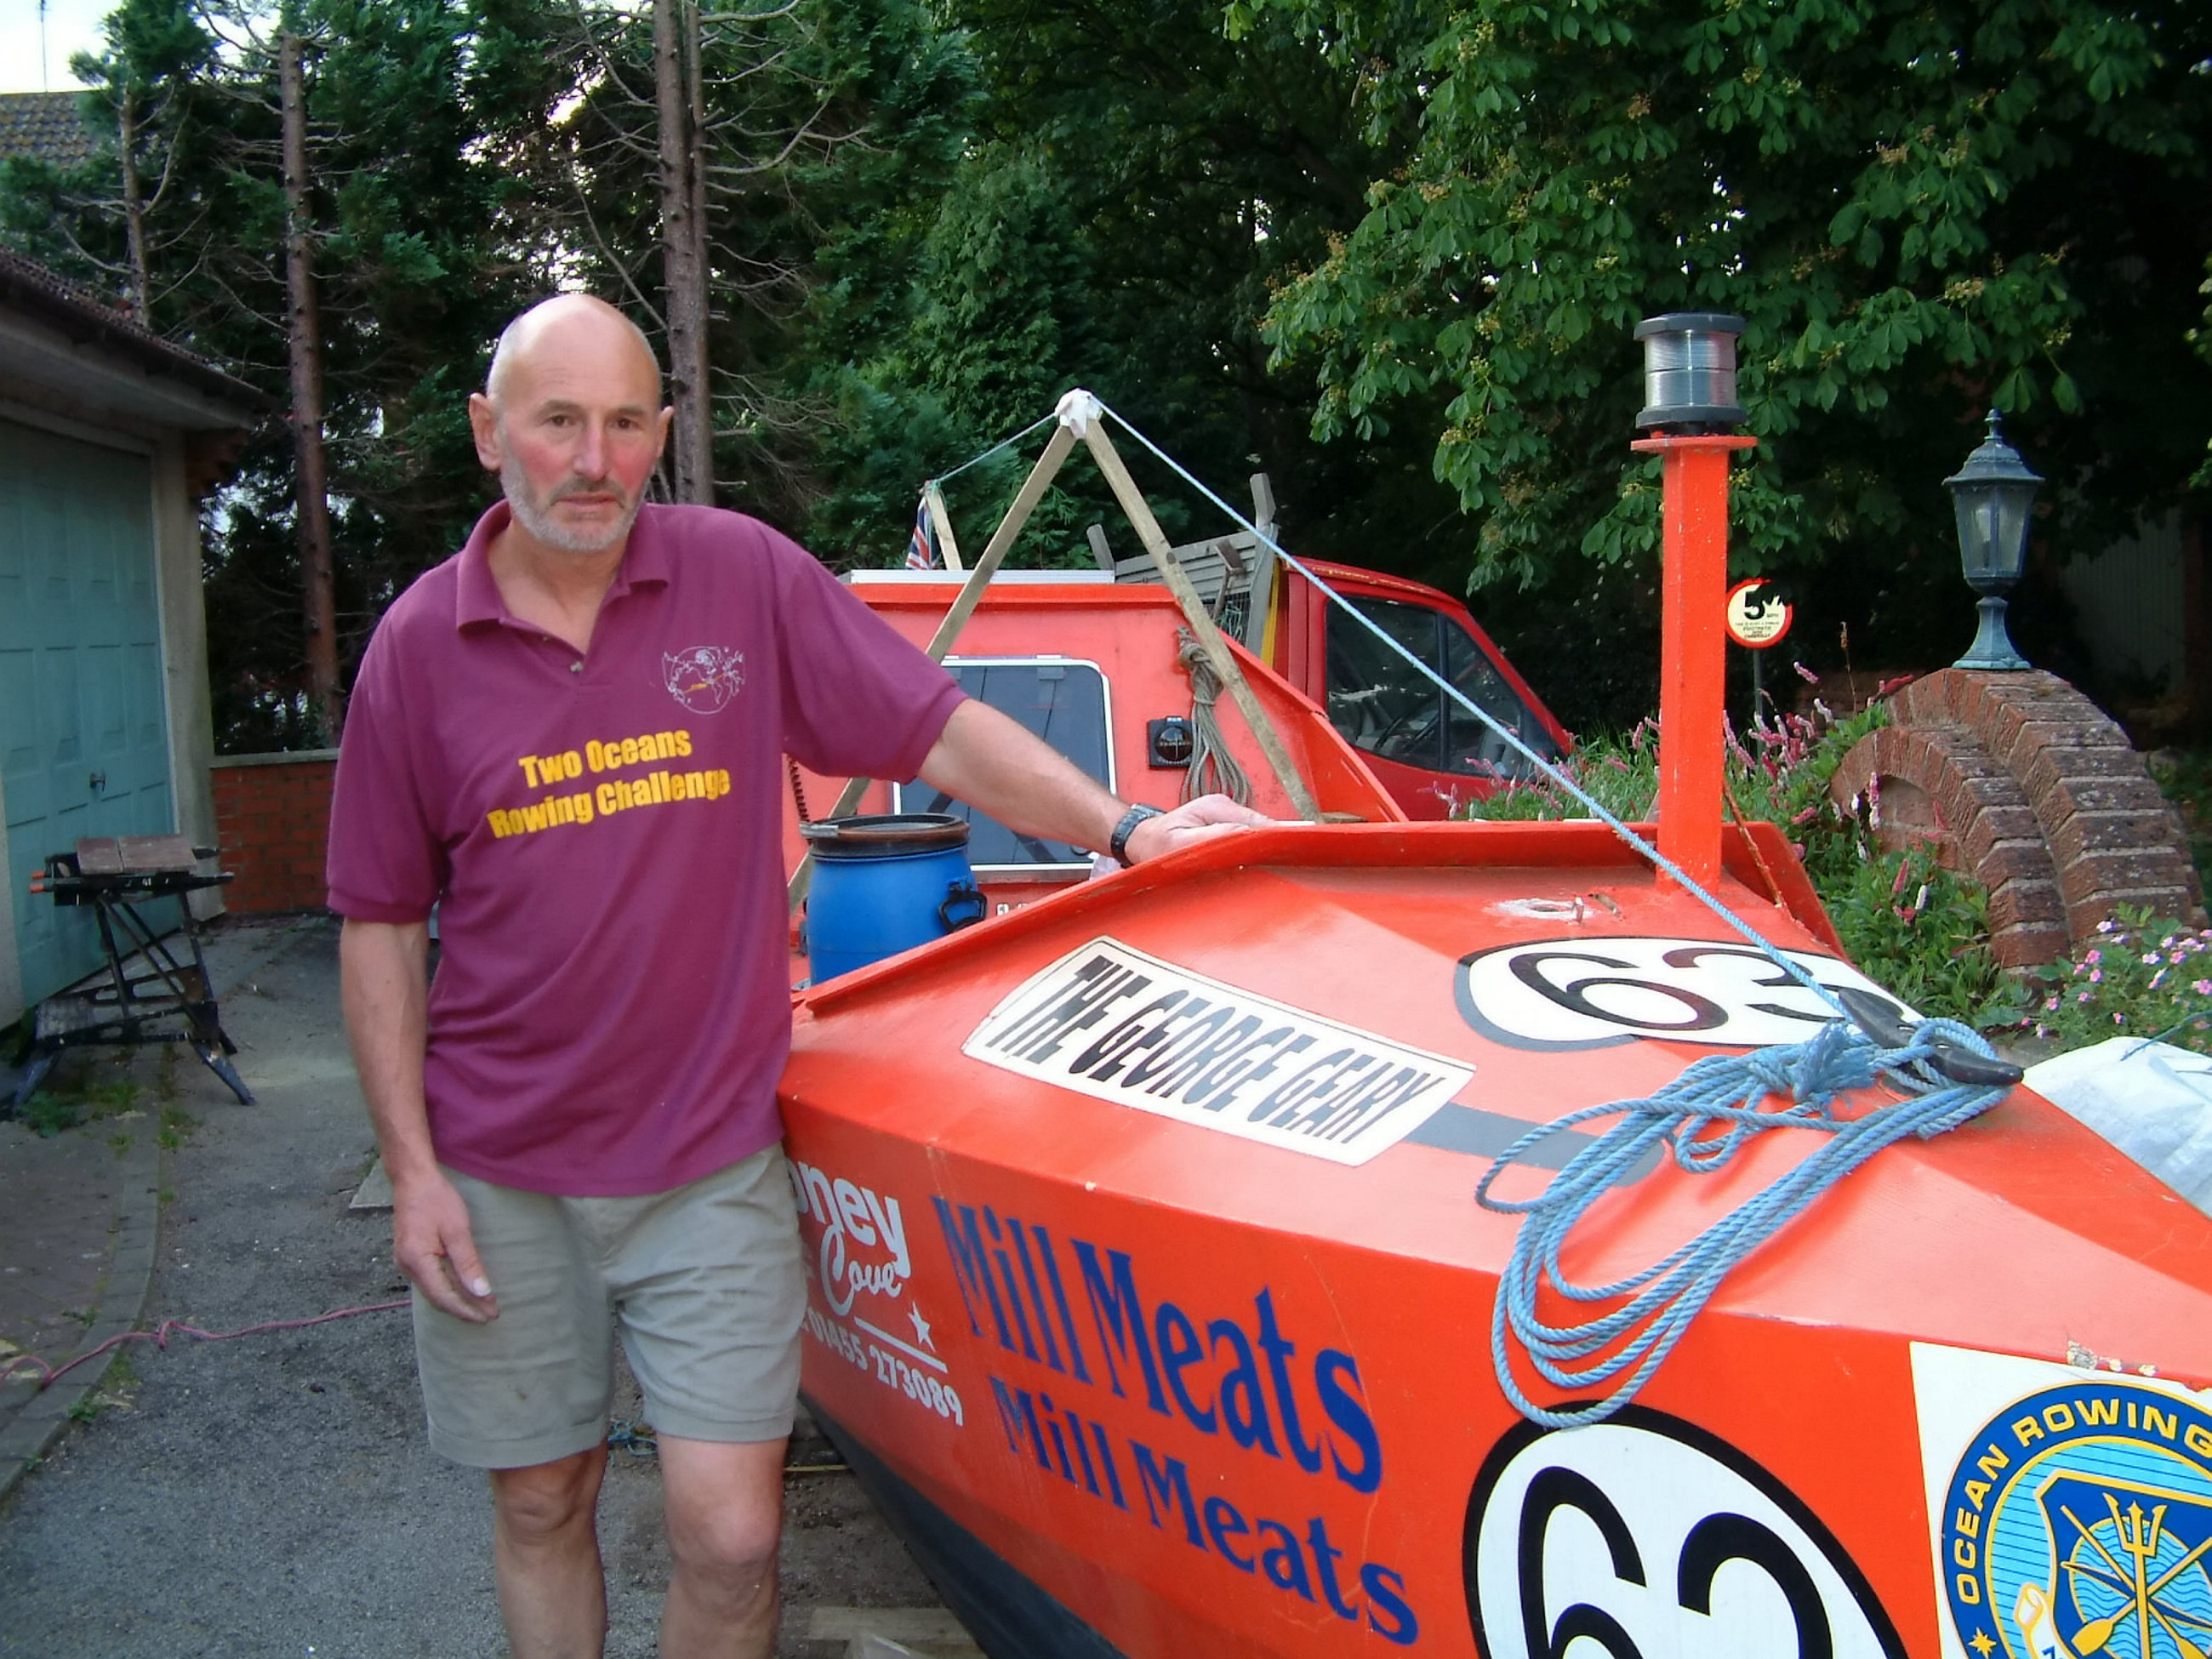 72-Year-Old Man Rows Across Atlantic Alone In Just 96 Days